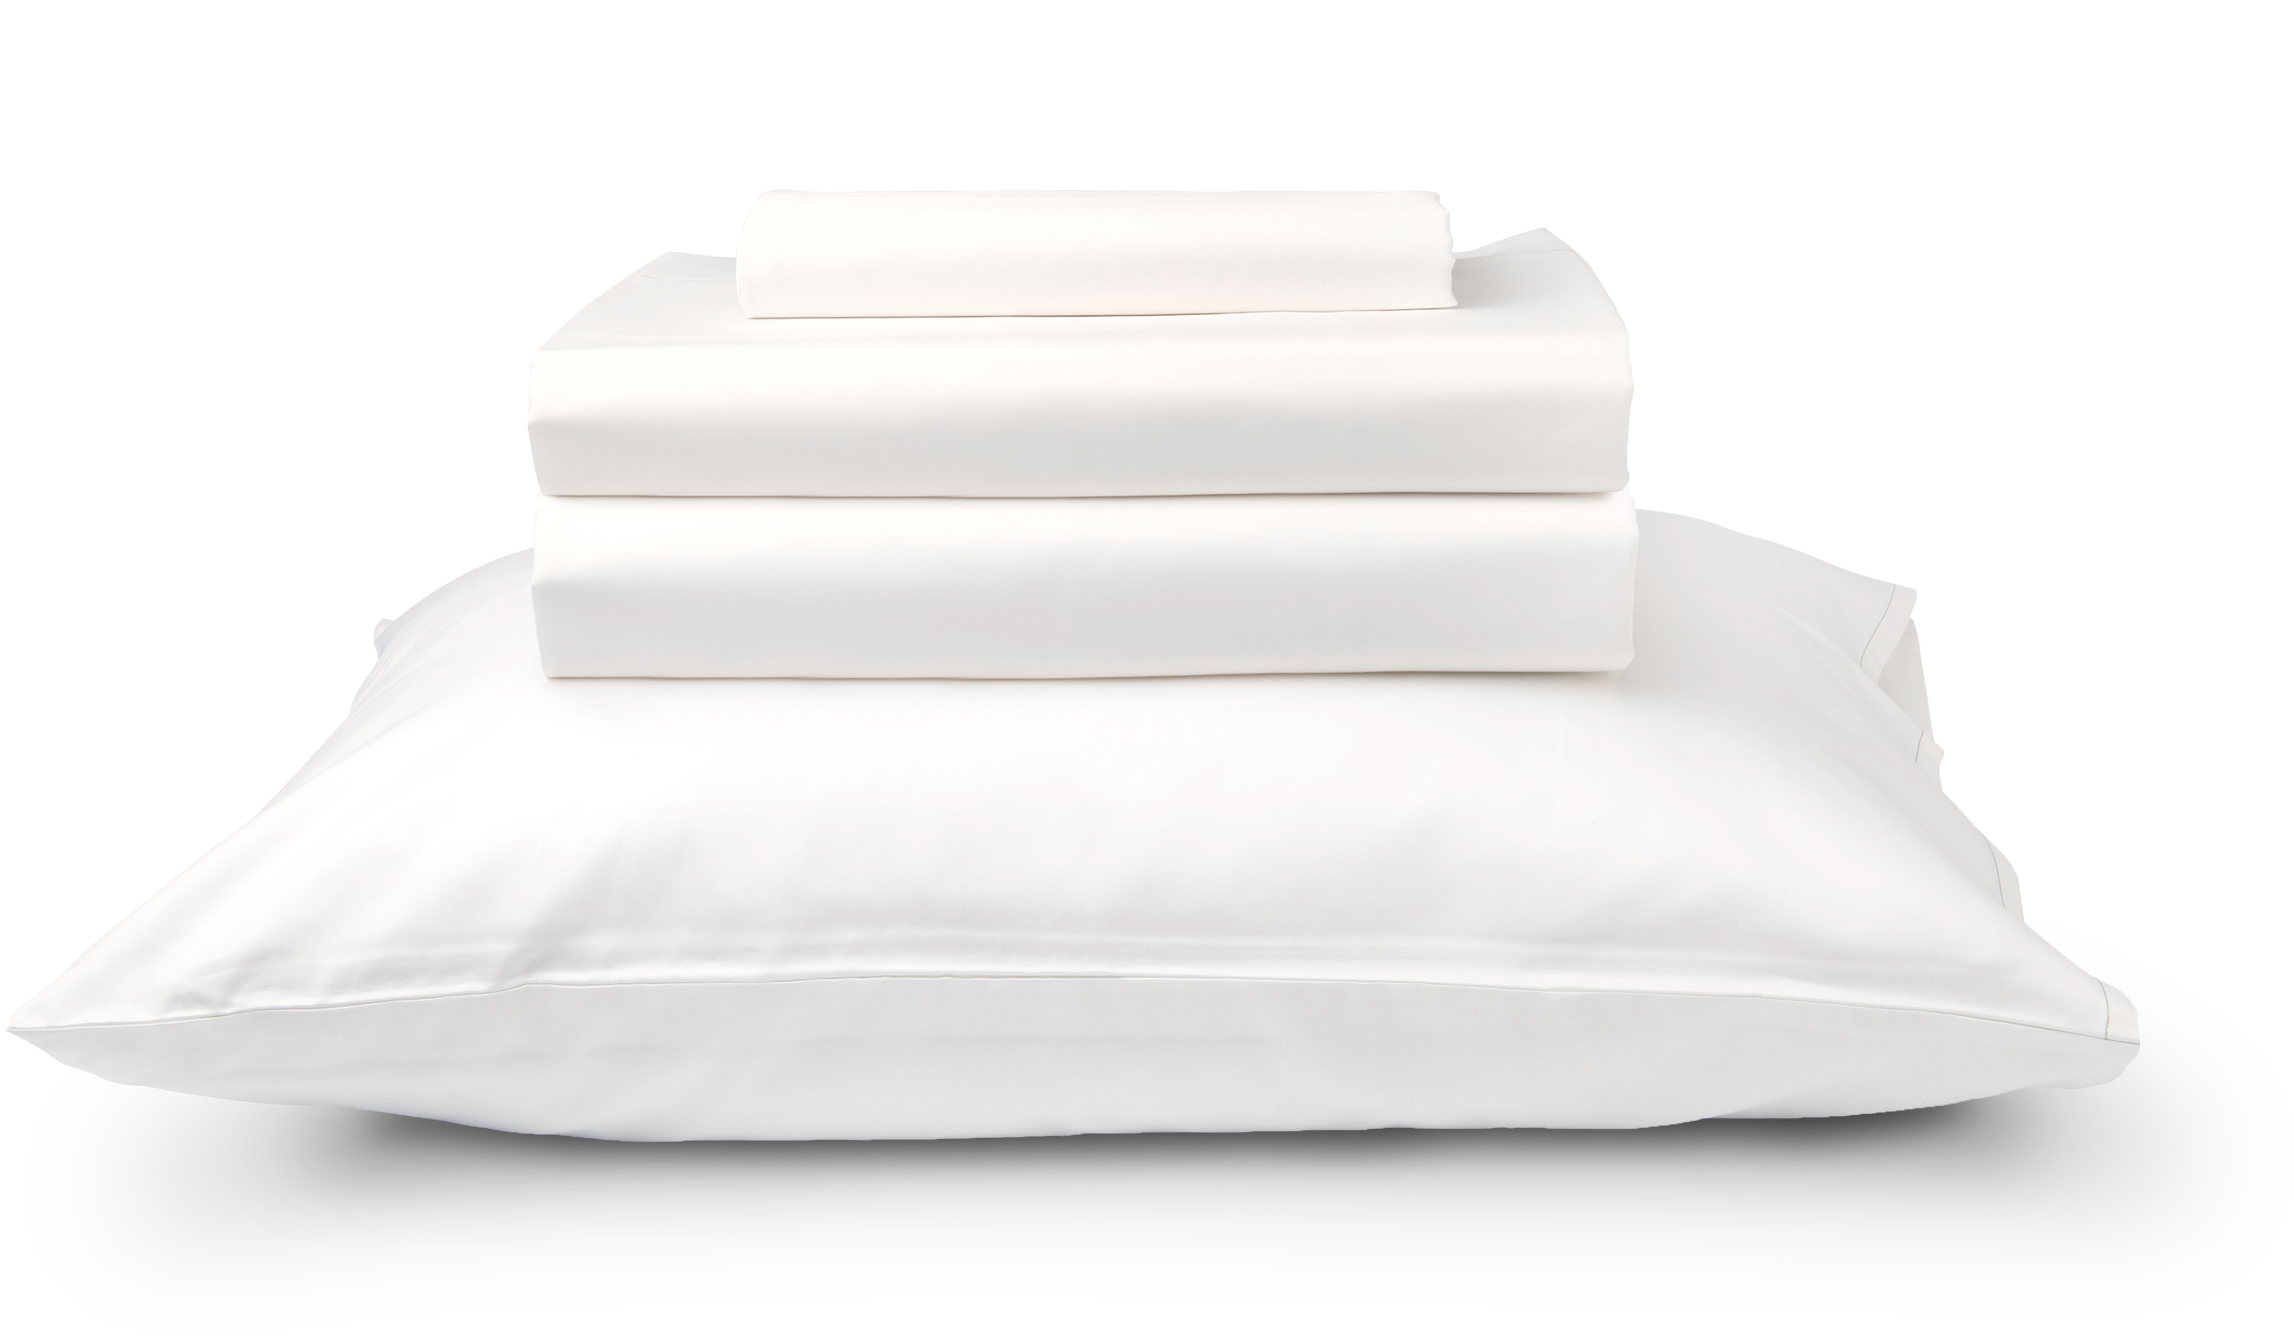 Clipart bed bed linen. The endy sheets designed